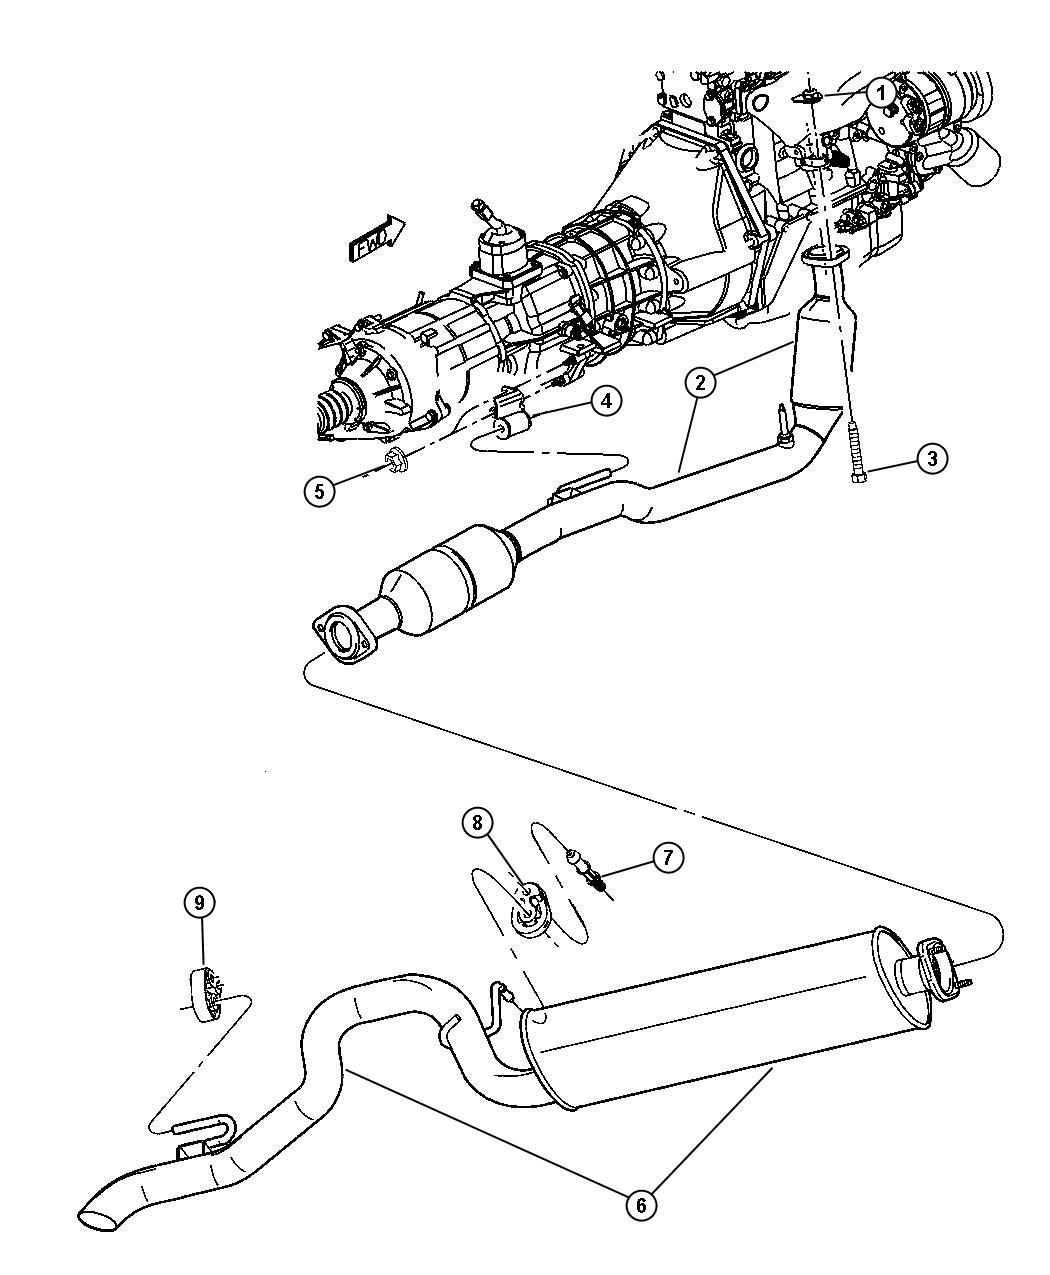 Jeep Liberty Exhaust Diagram in addition Bearing furthermore 4390937 besides Jeep 4x4 Drivetrain Diagram further Toyota Fuel Tank Filler Hose To Pipe. on jeep engine parts